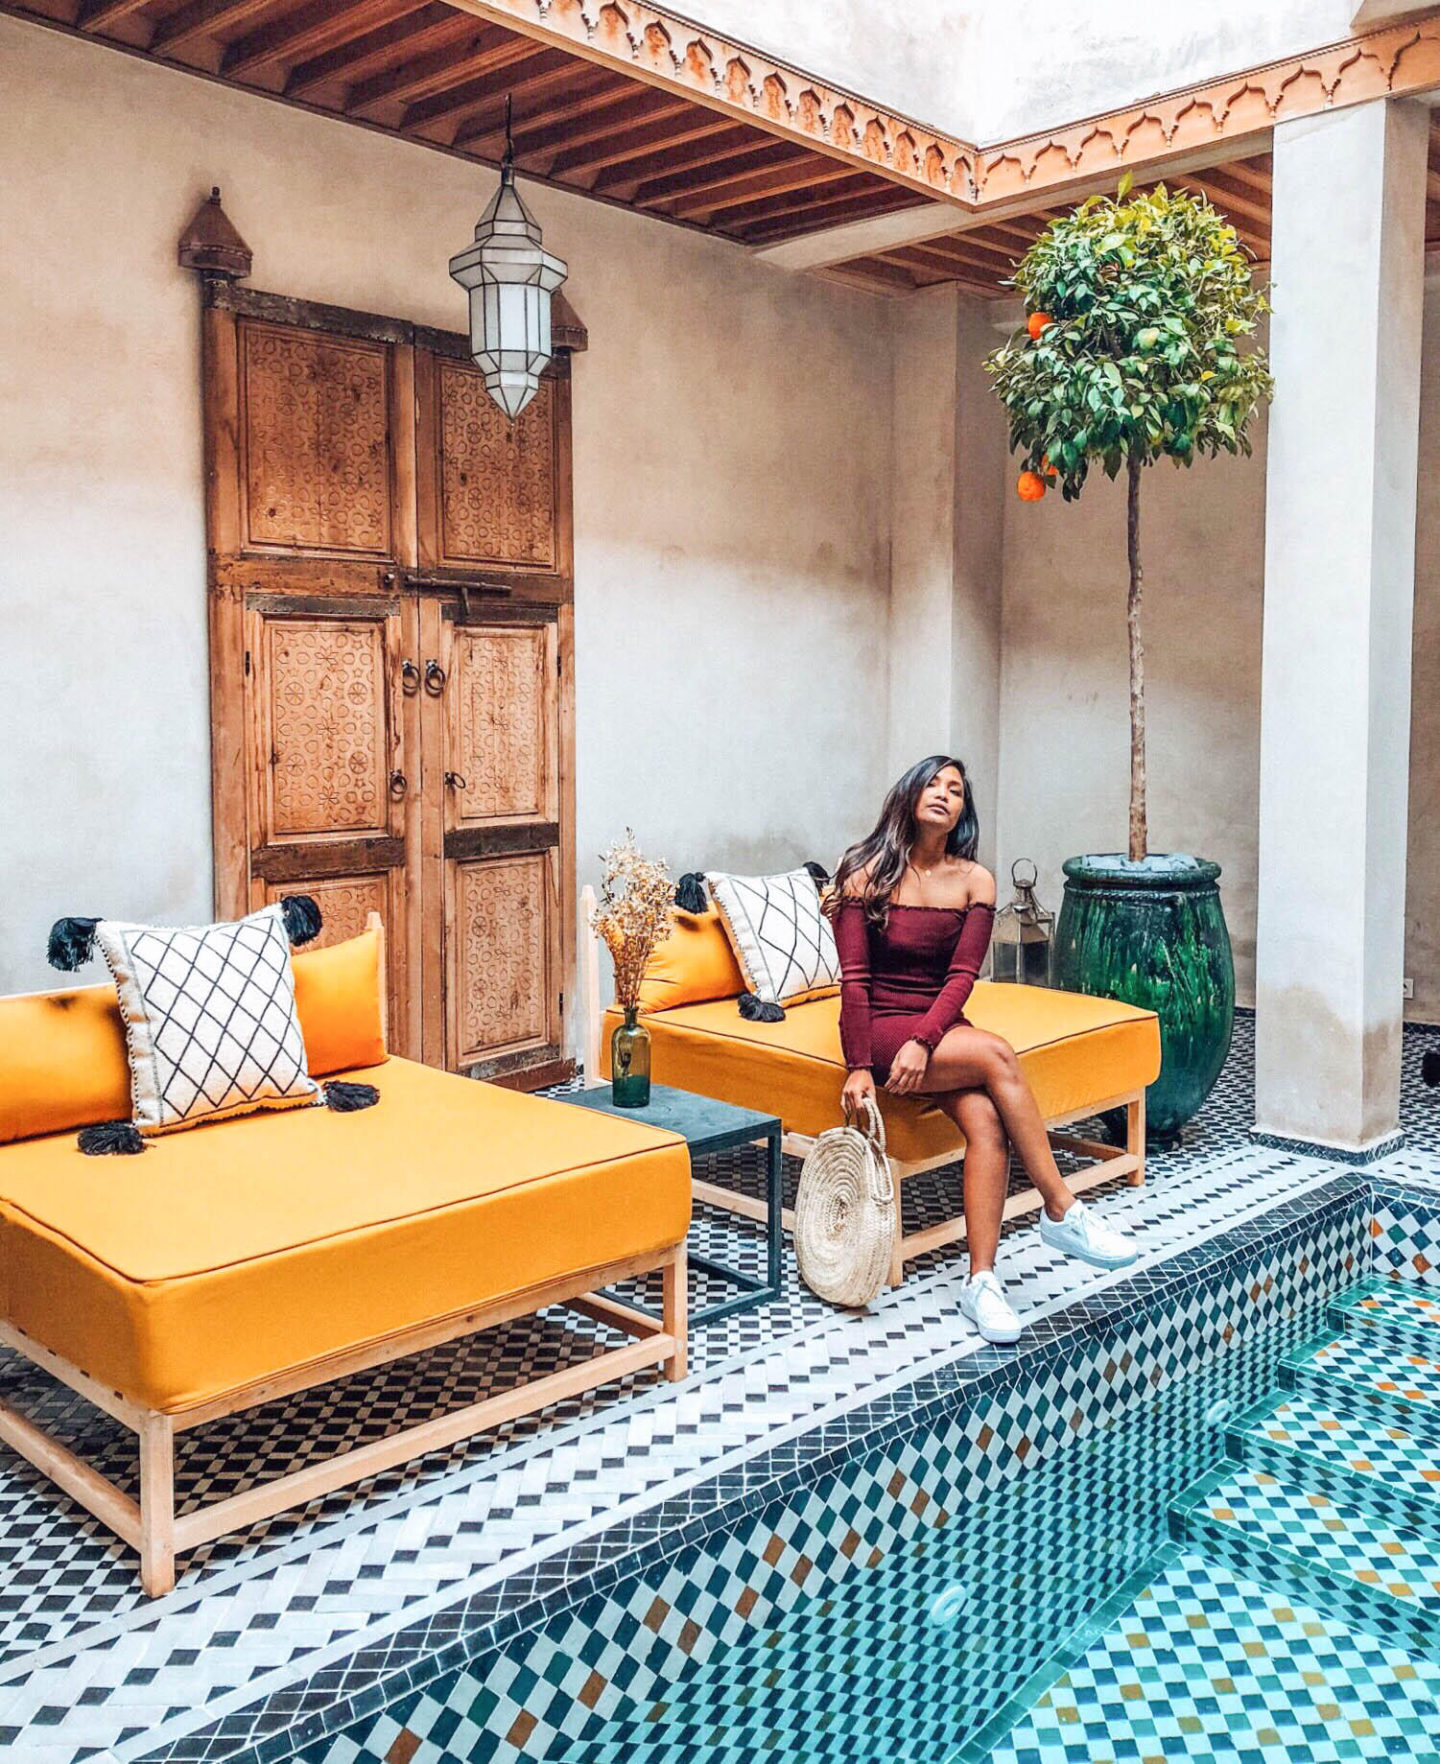 7 outfits to wear in Marrakech